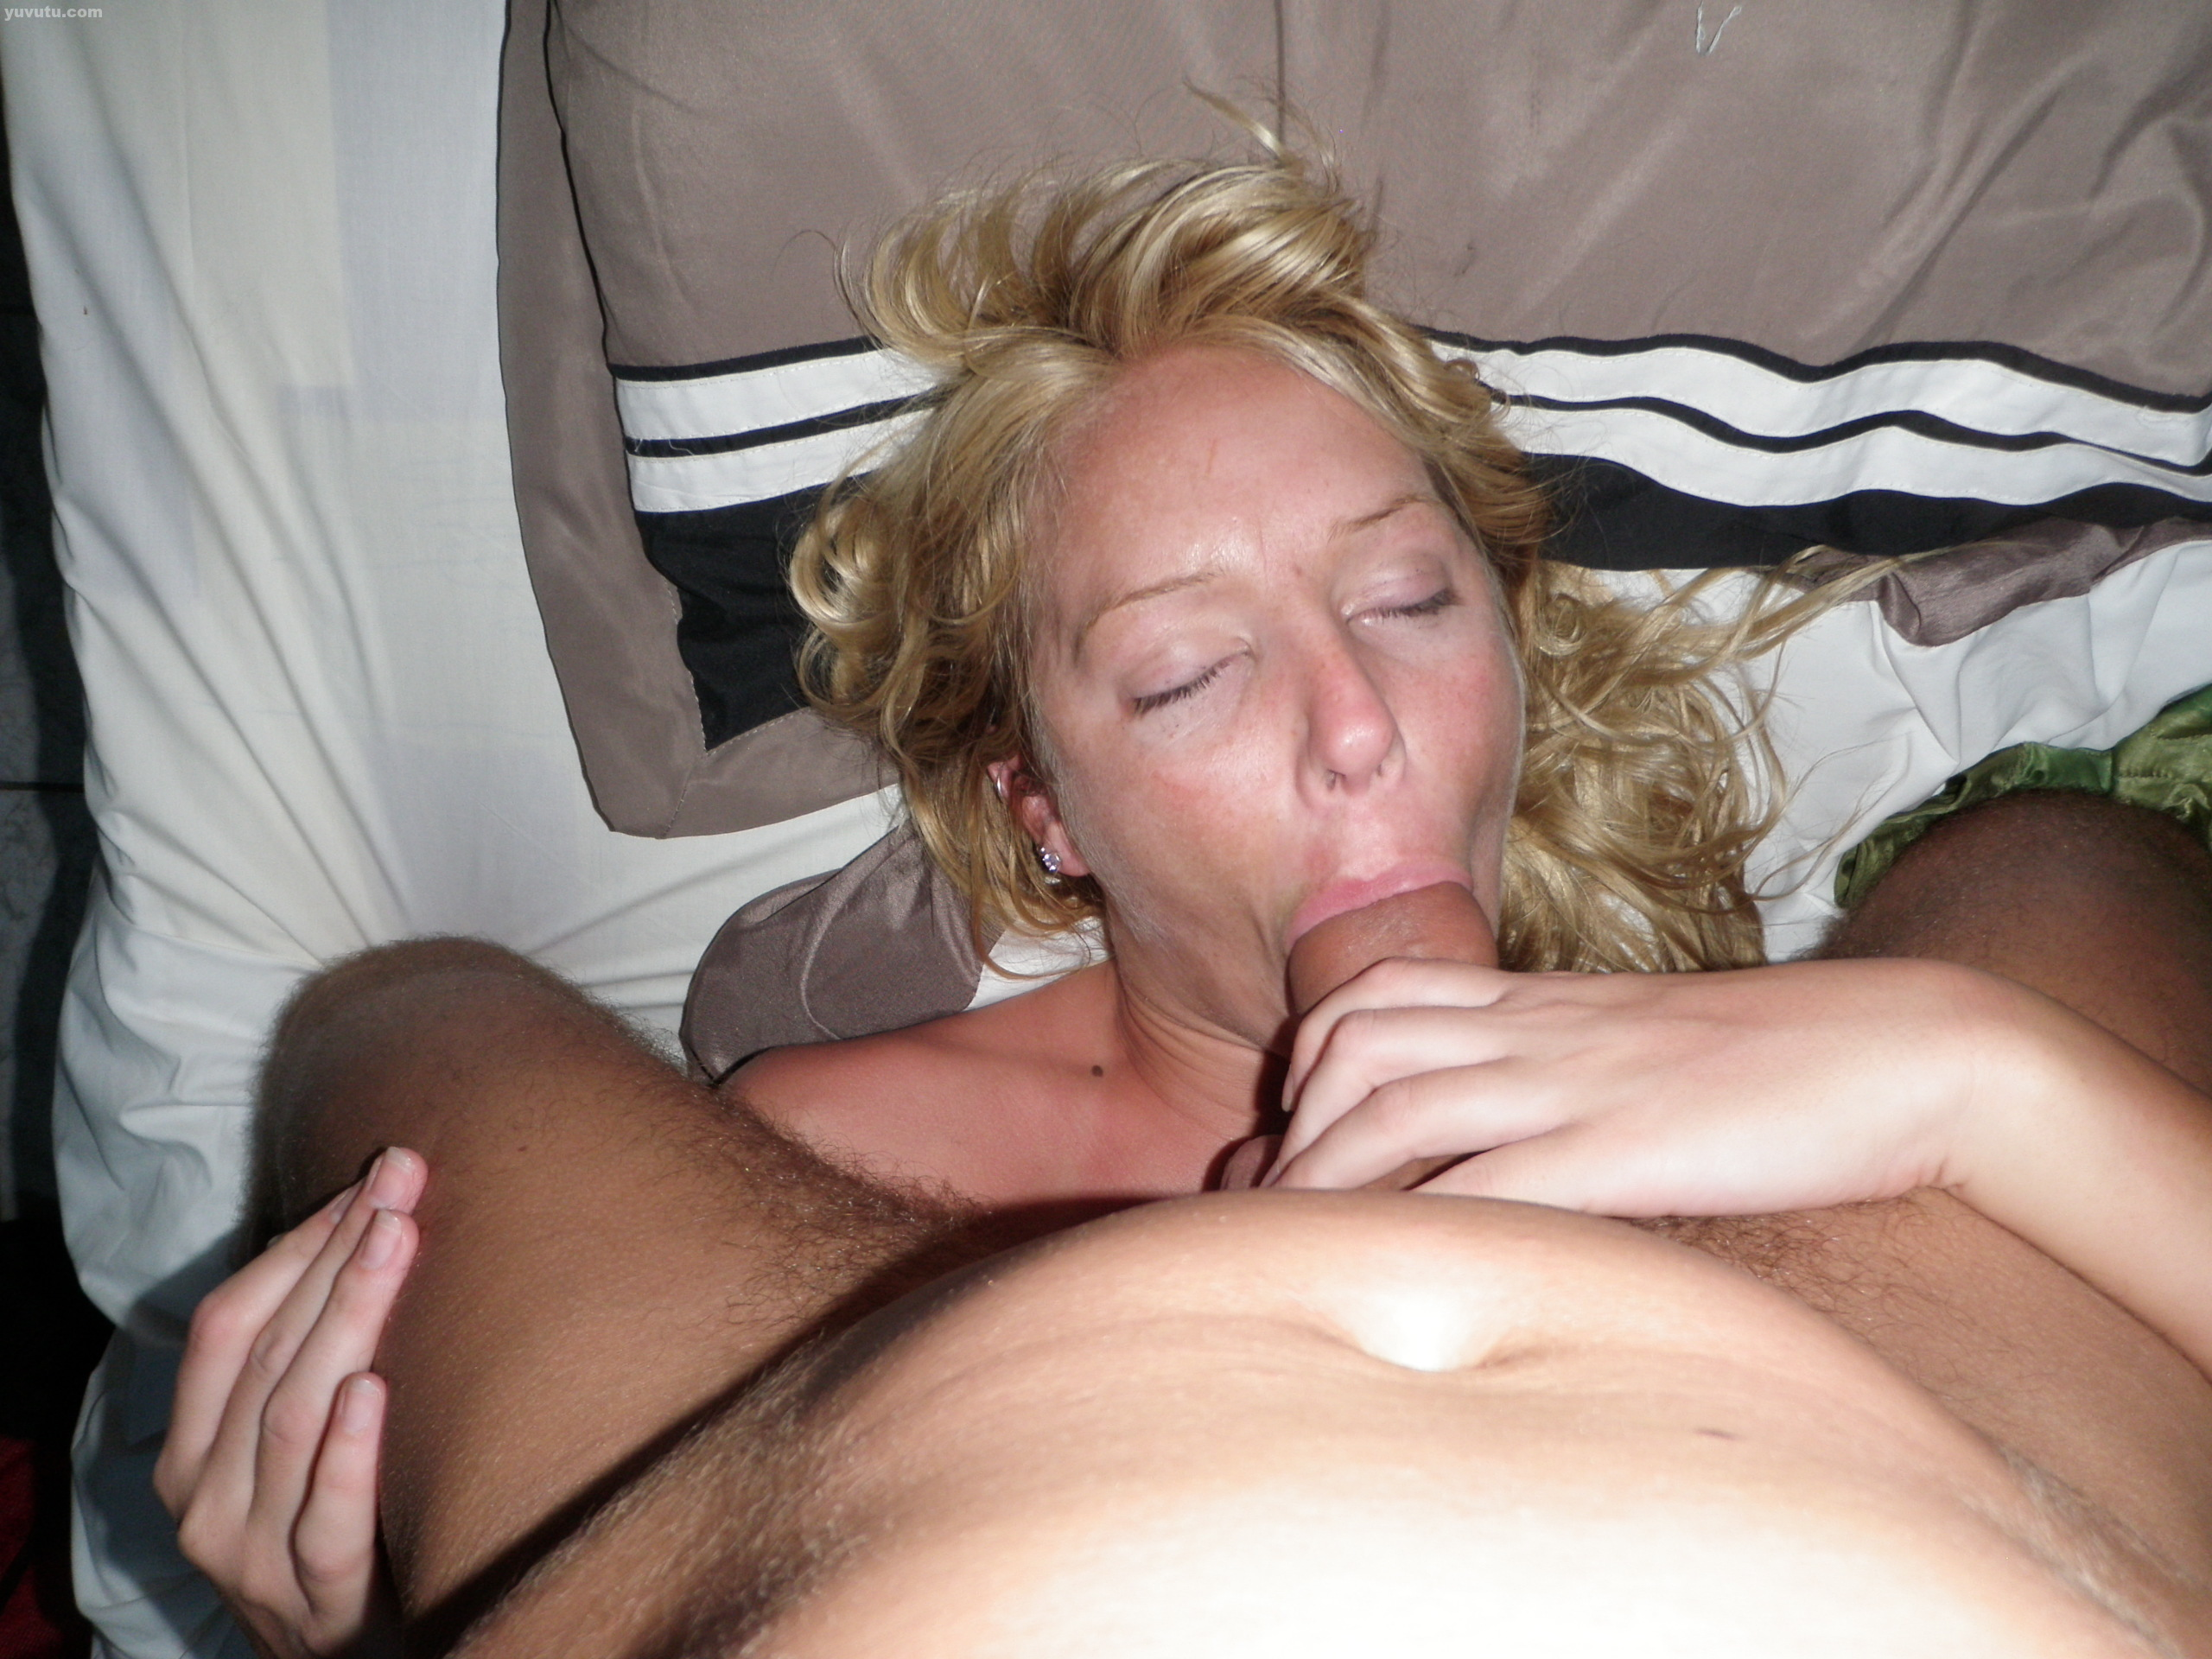 orgasm without clitoral stimulation